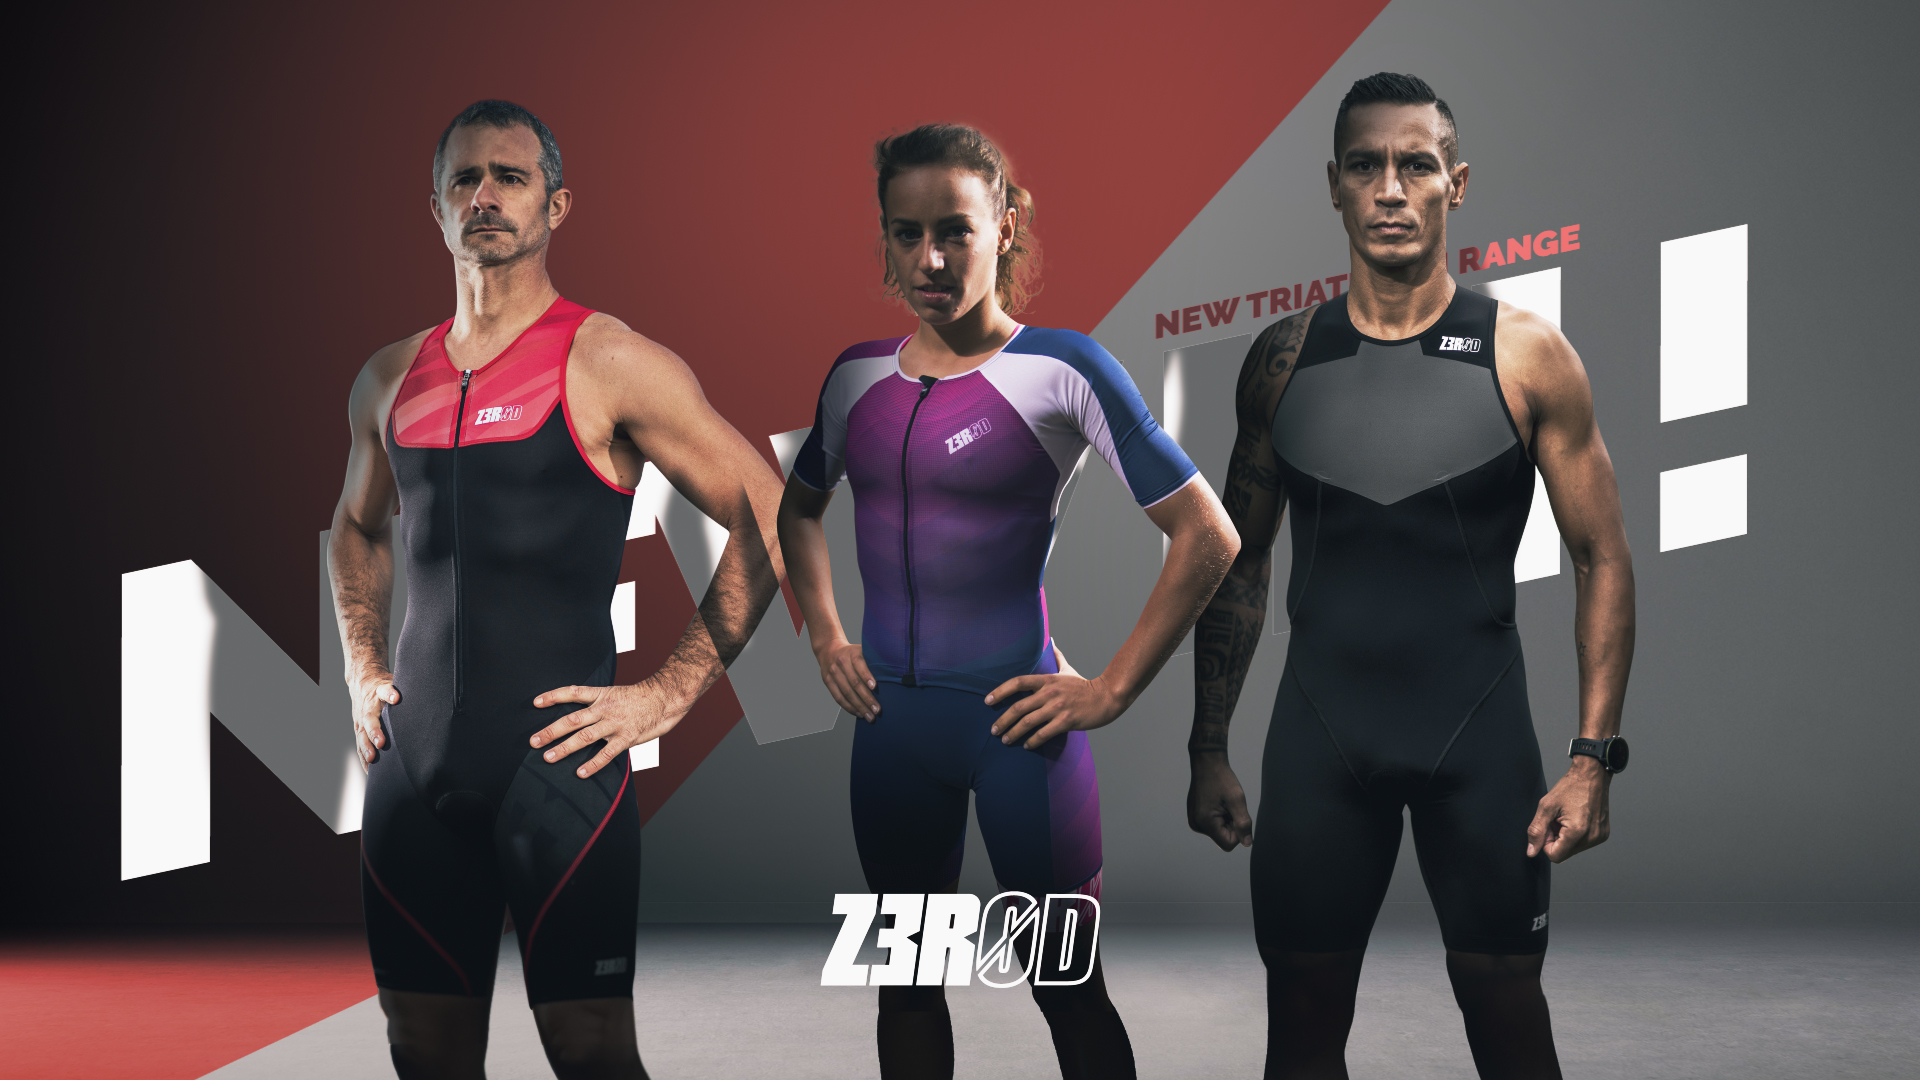 New Triathlon Collection!